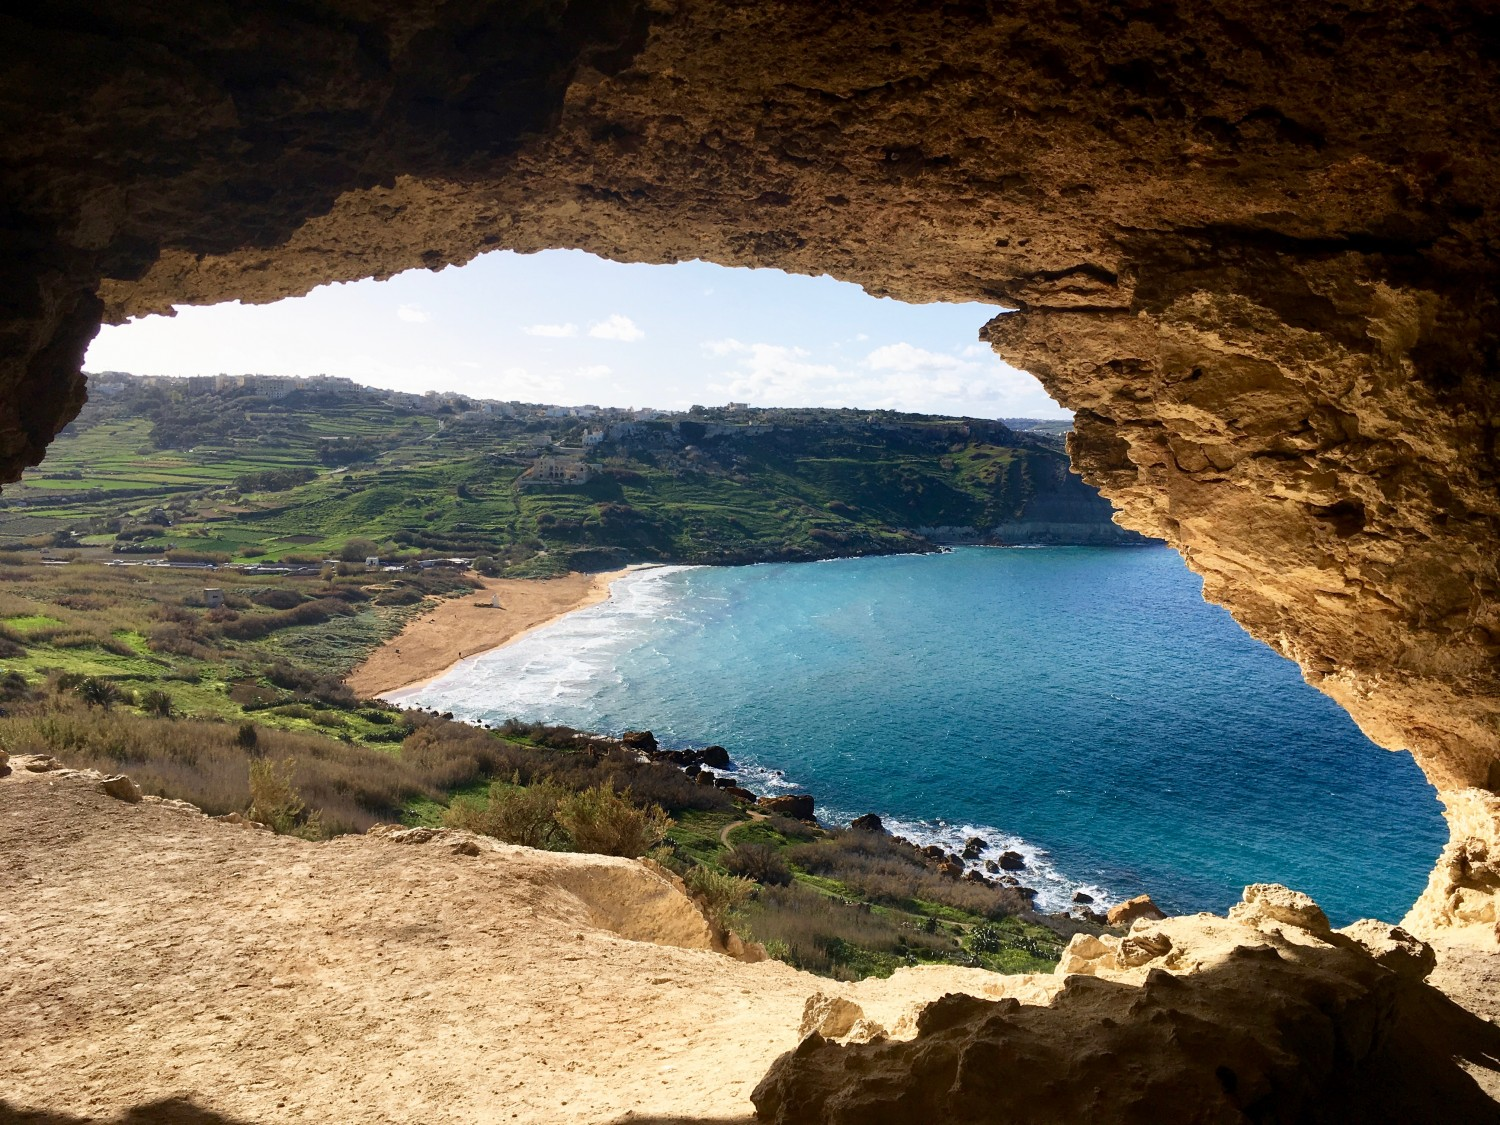 One of Gozo's most instagrammable spots